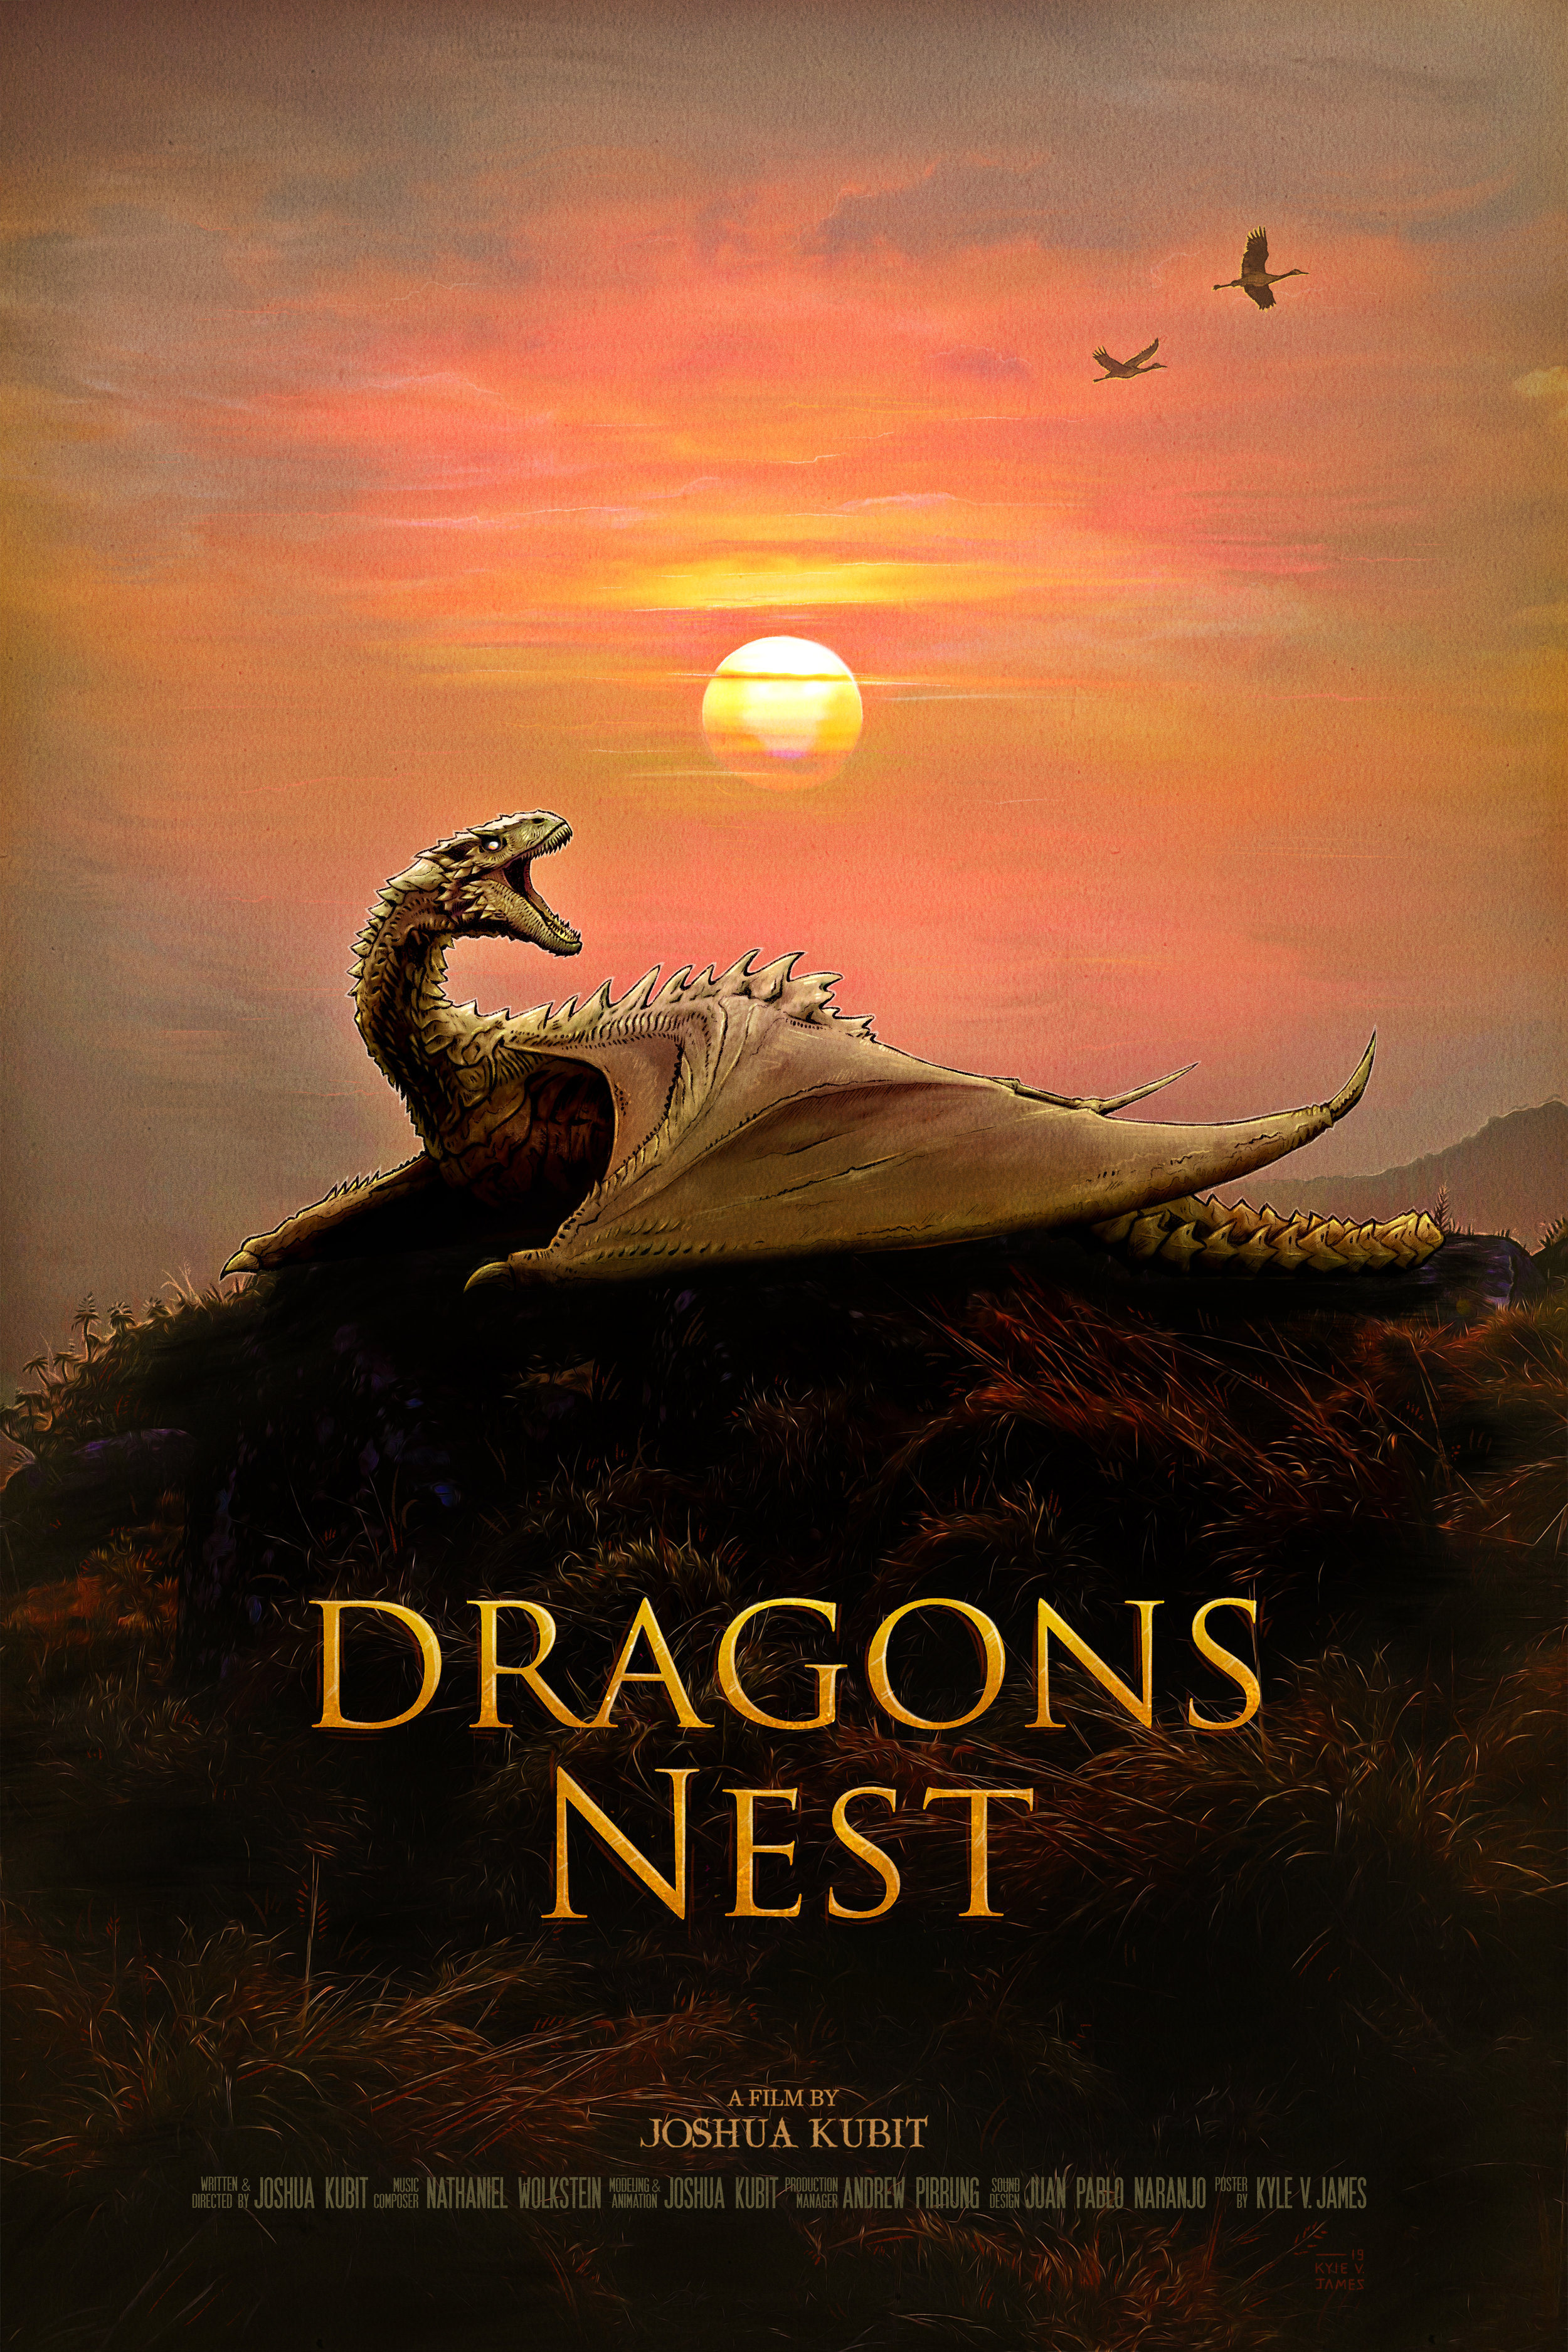 Dragons Nest - Official Poster